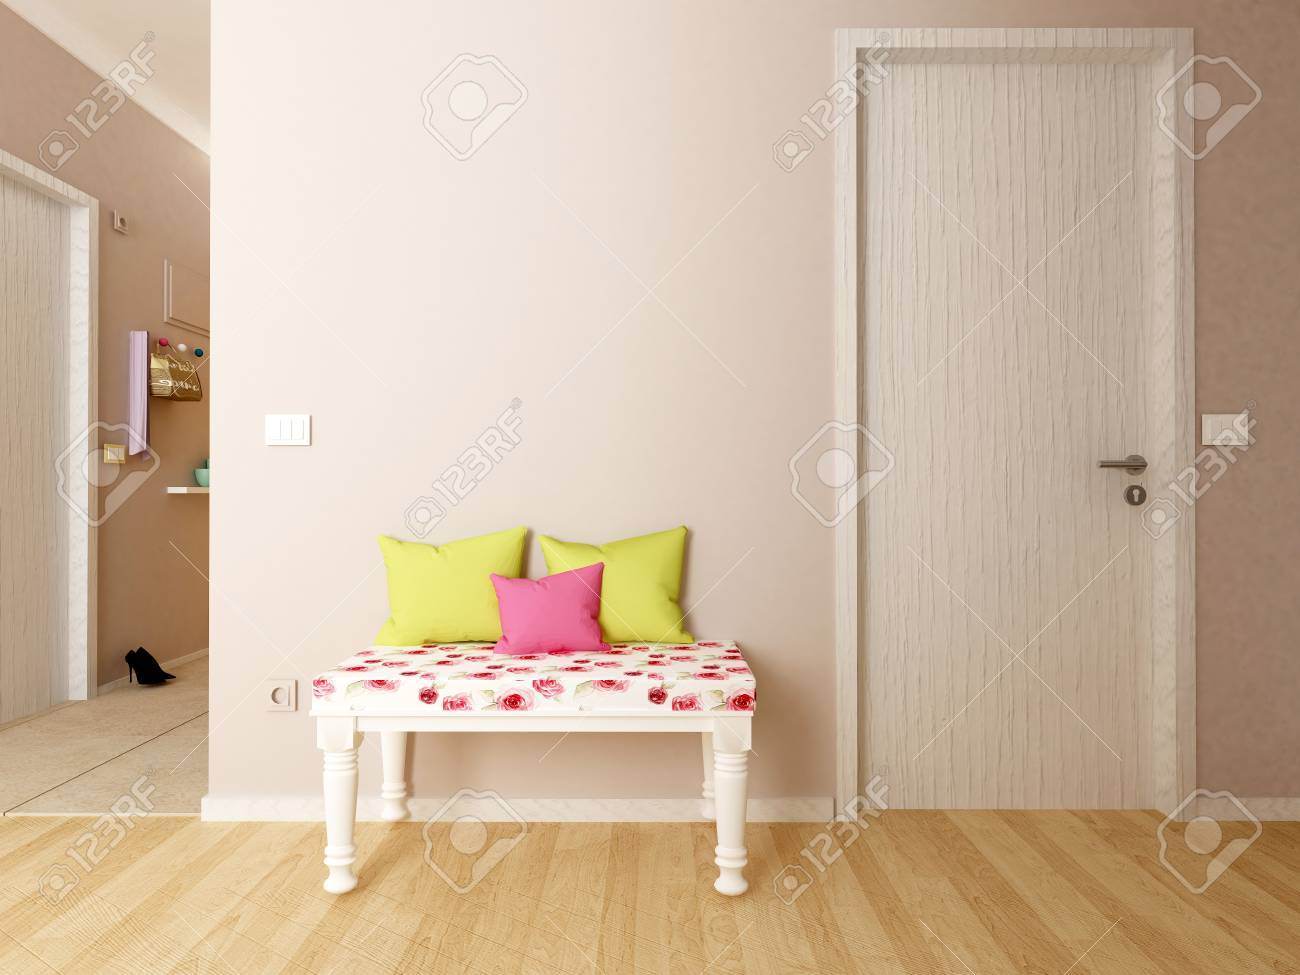 interior of hallway with a drawer cabinet - 67154119